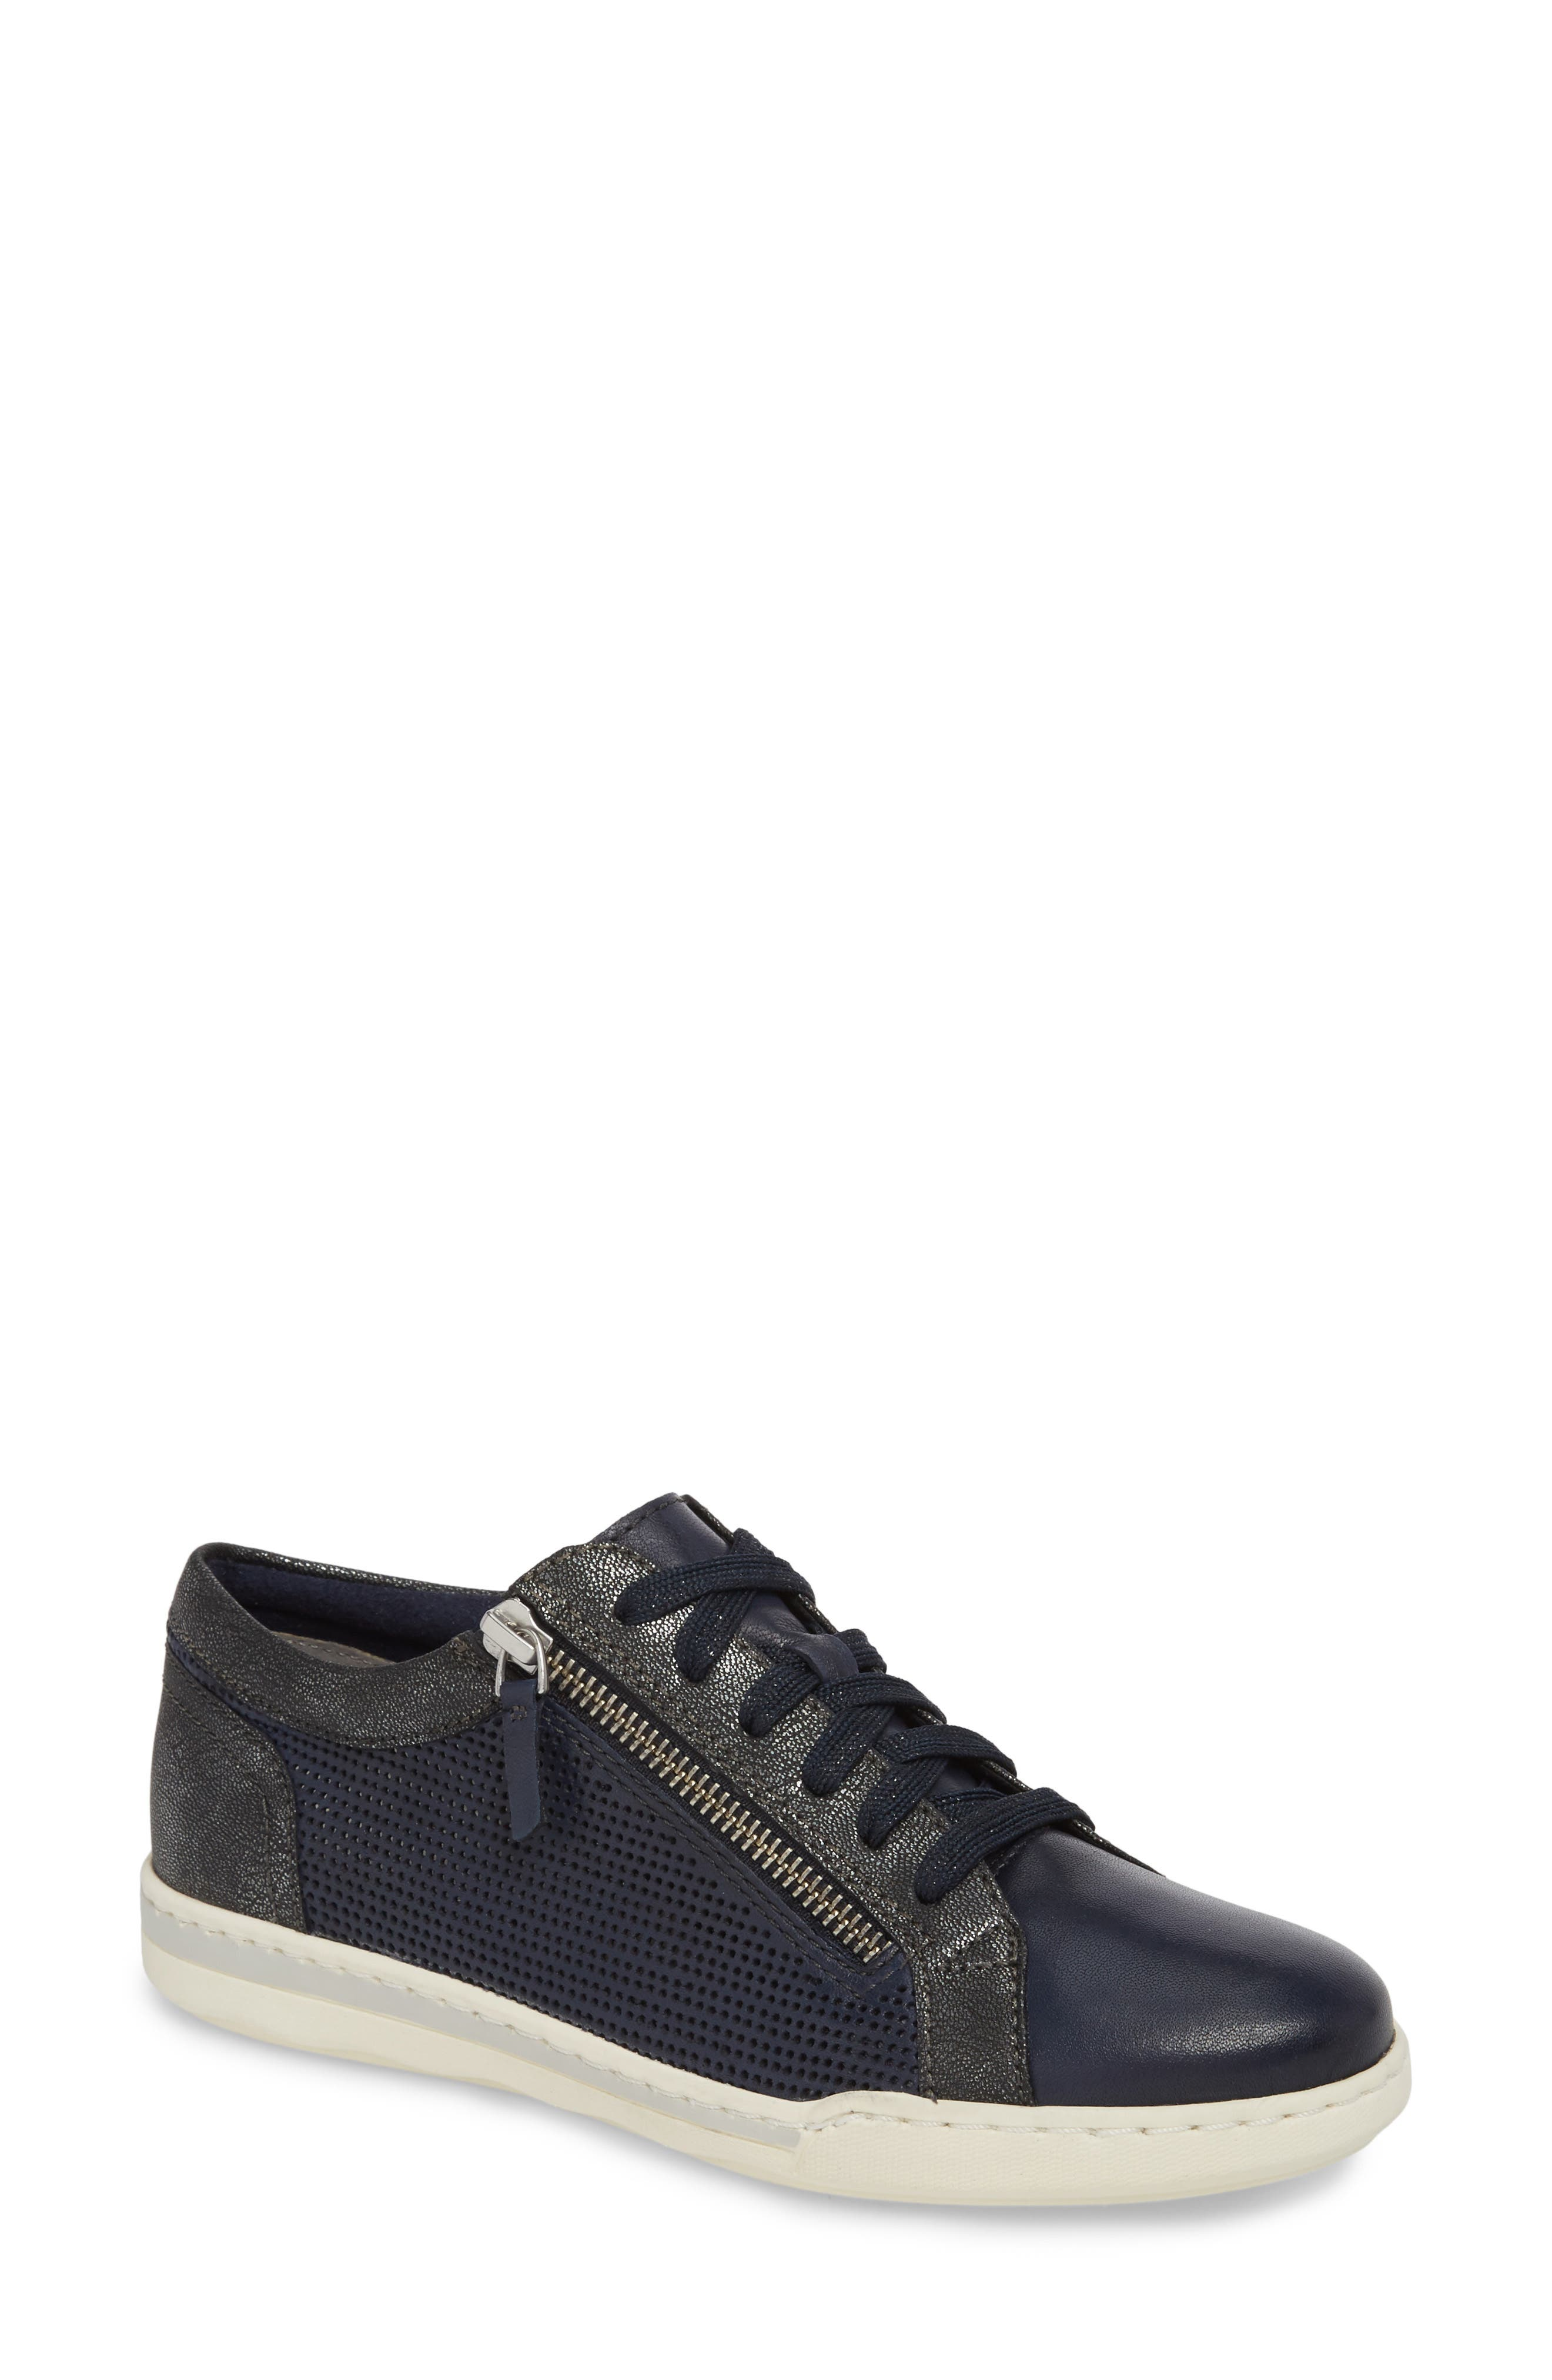 Freya Sneaker,                         Main,                         color, Navy Leather